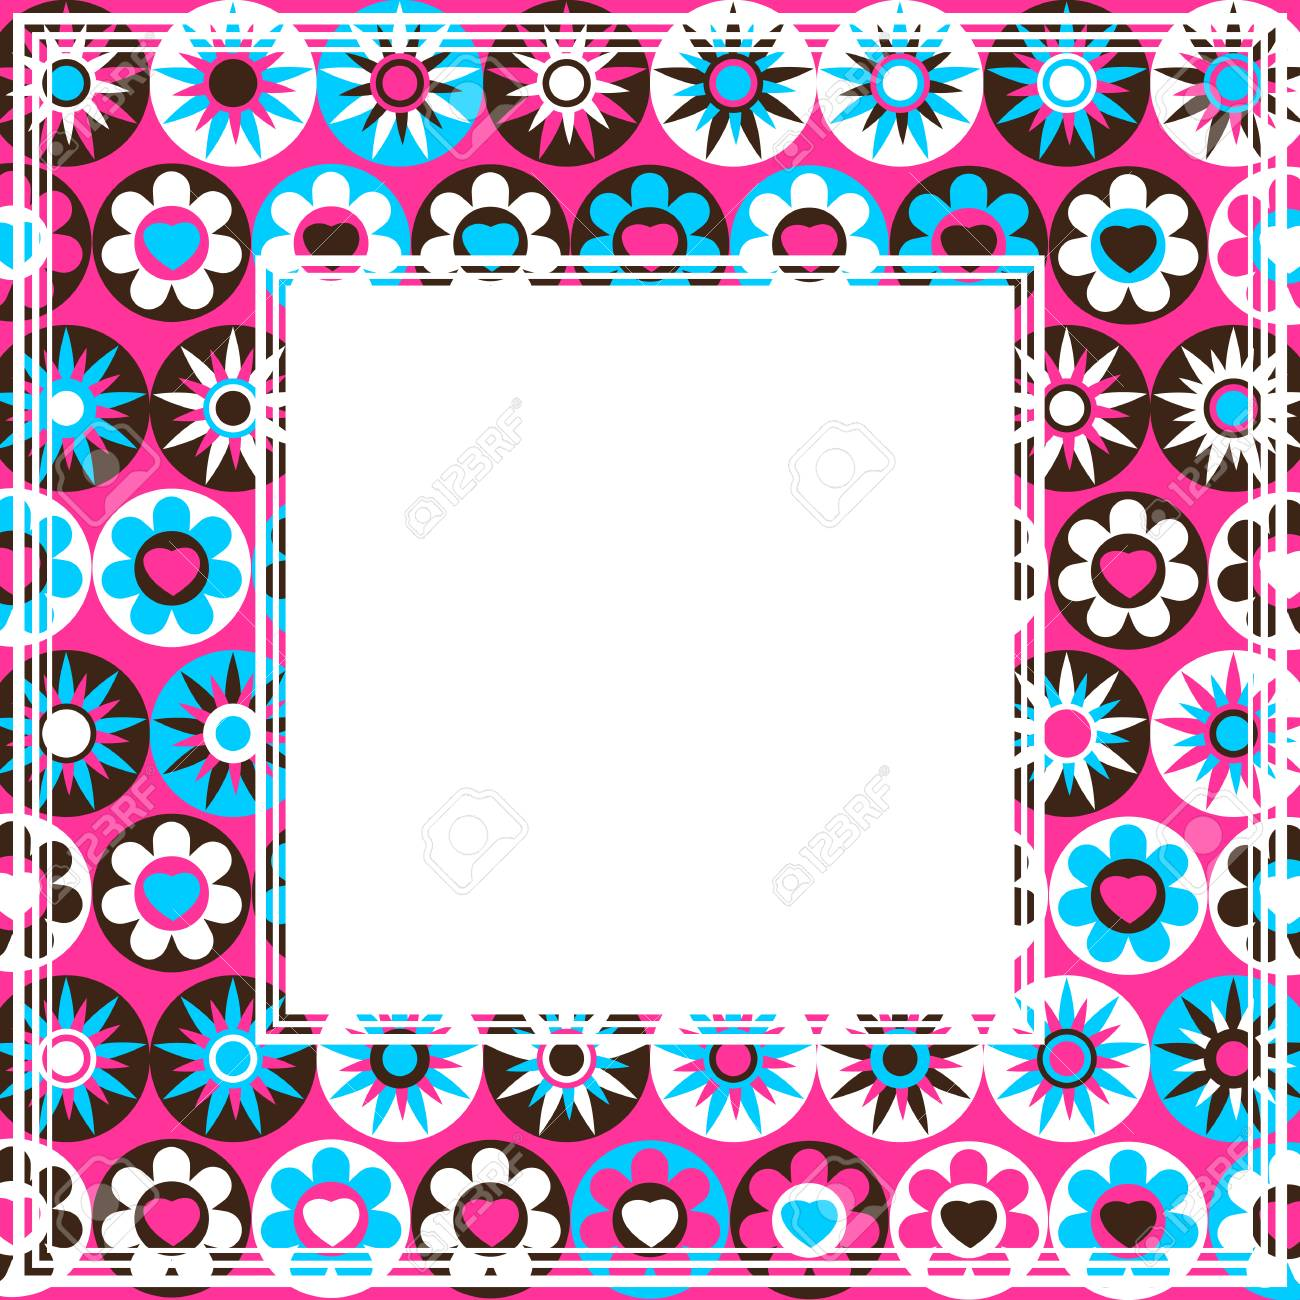 Abstract Pink Border With Multicolored Flowers And Stars Royalty